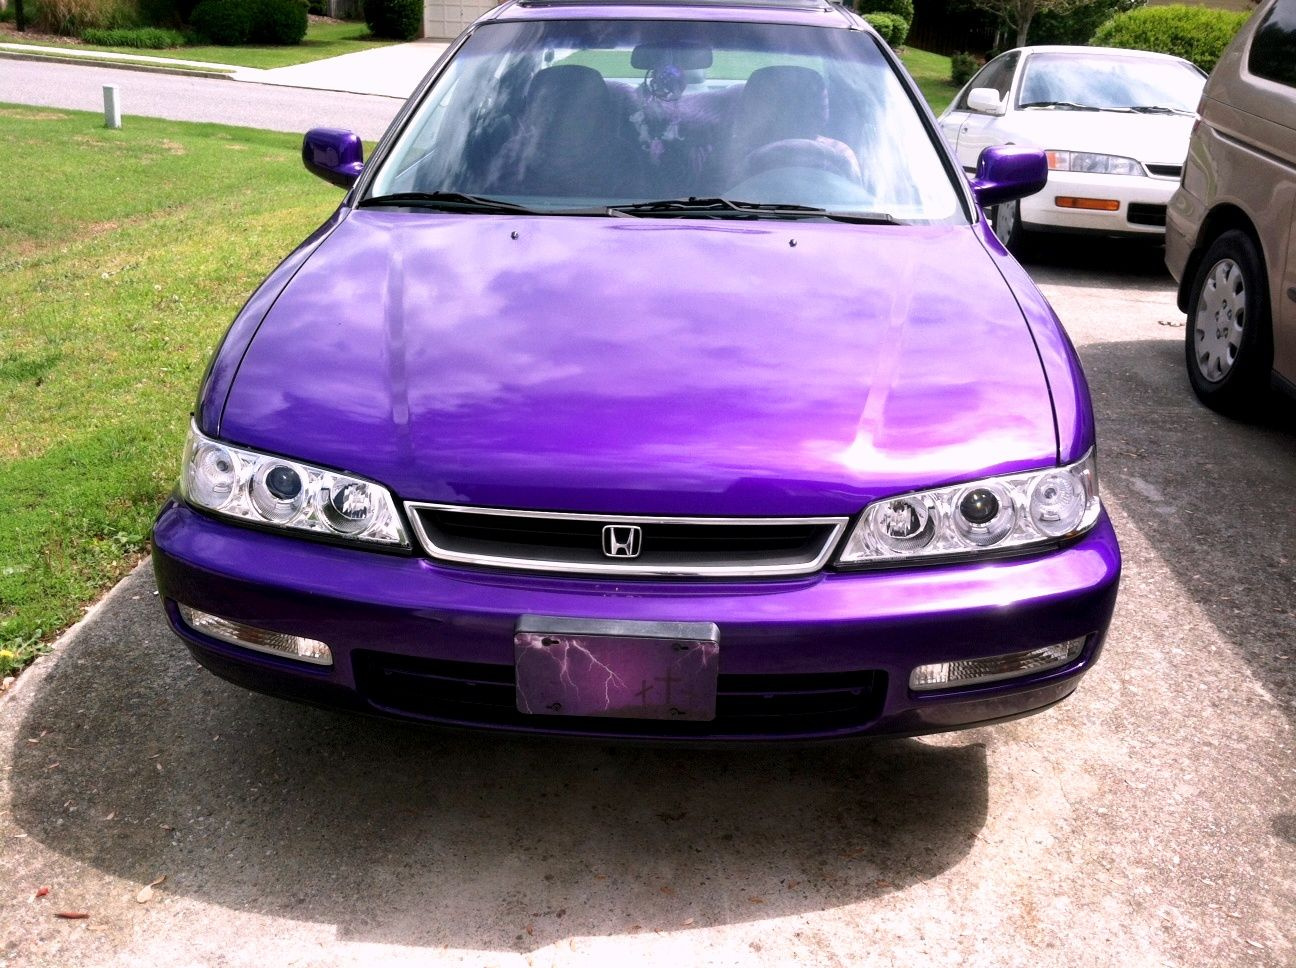 Purple Car My Car S Name Was Eggplant Eggy For Short Due To Her Original Color She S Not Much Of An Eggplant Anymore But The Name Purple Car Purple Car